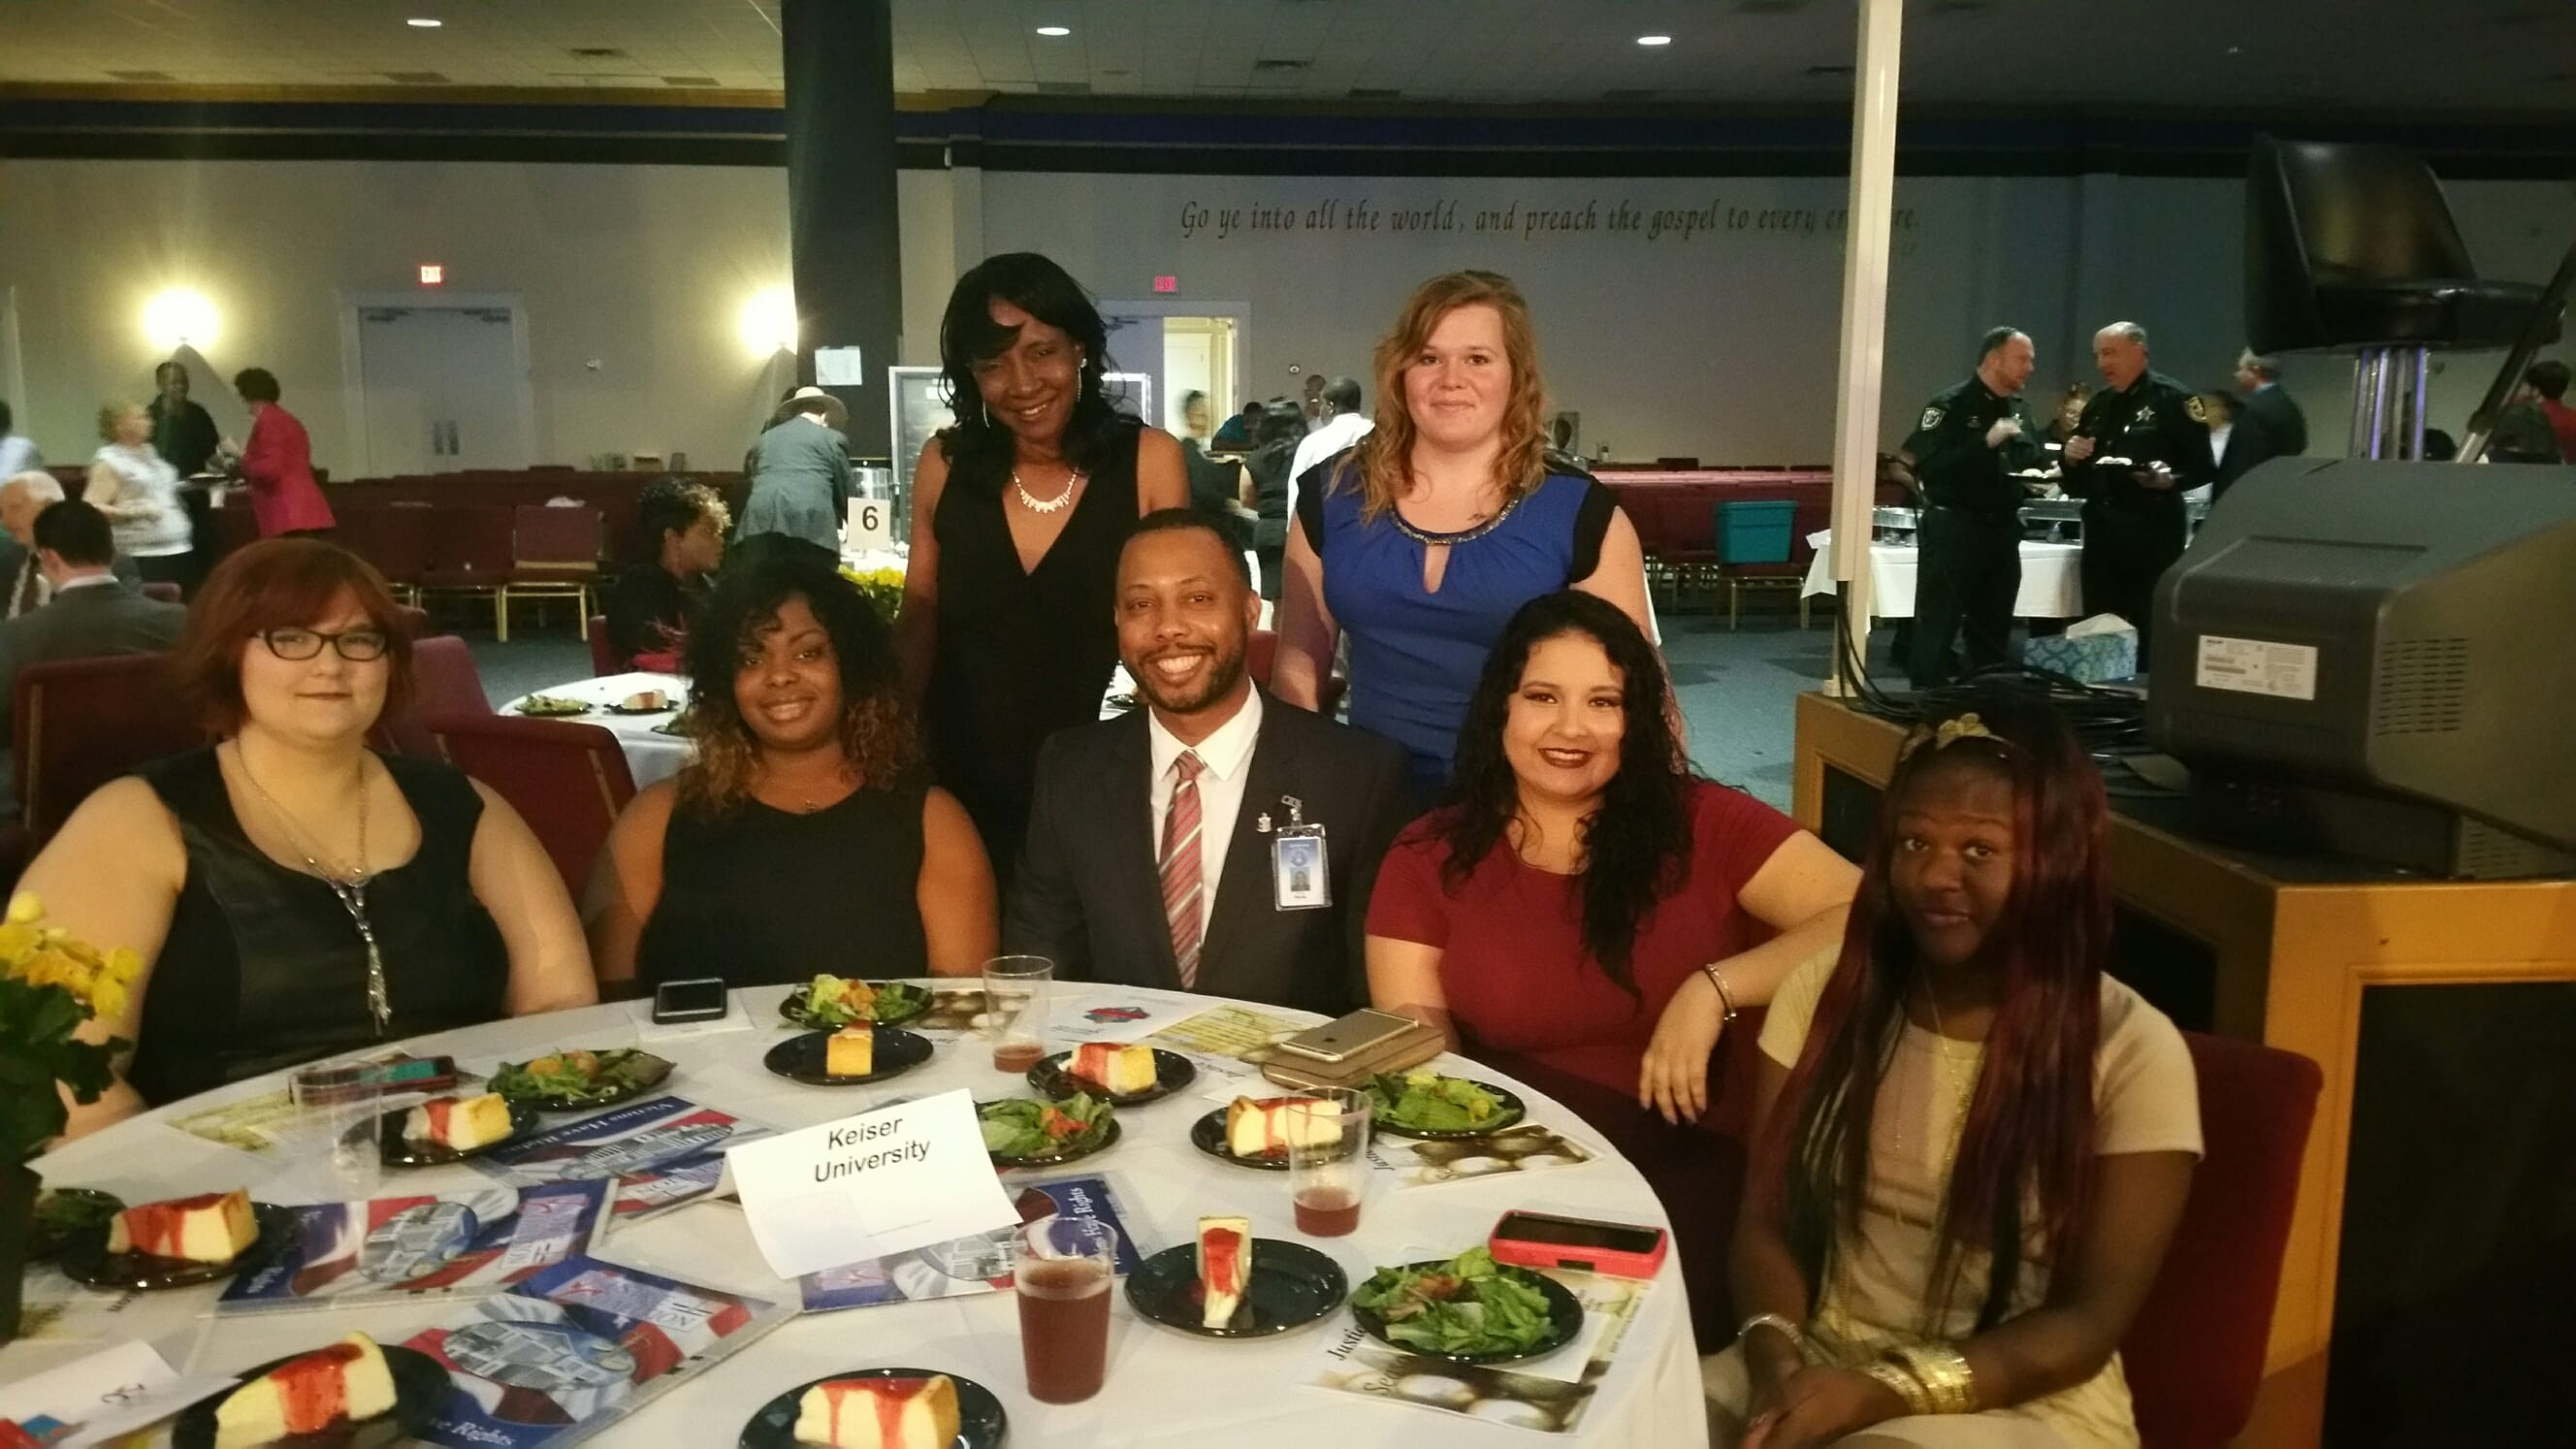 Jacksonville Sent Attendees to the 7th Annual Champions for Justice Awards Dinenr